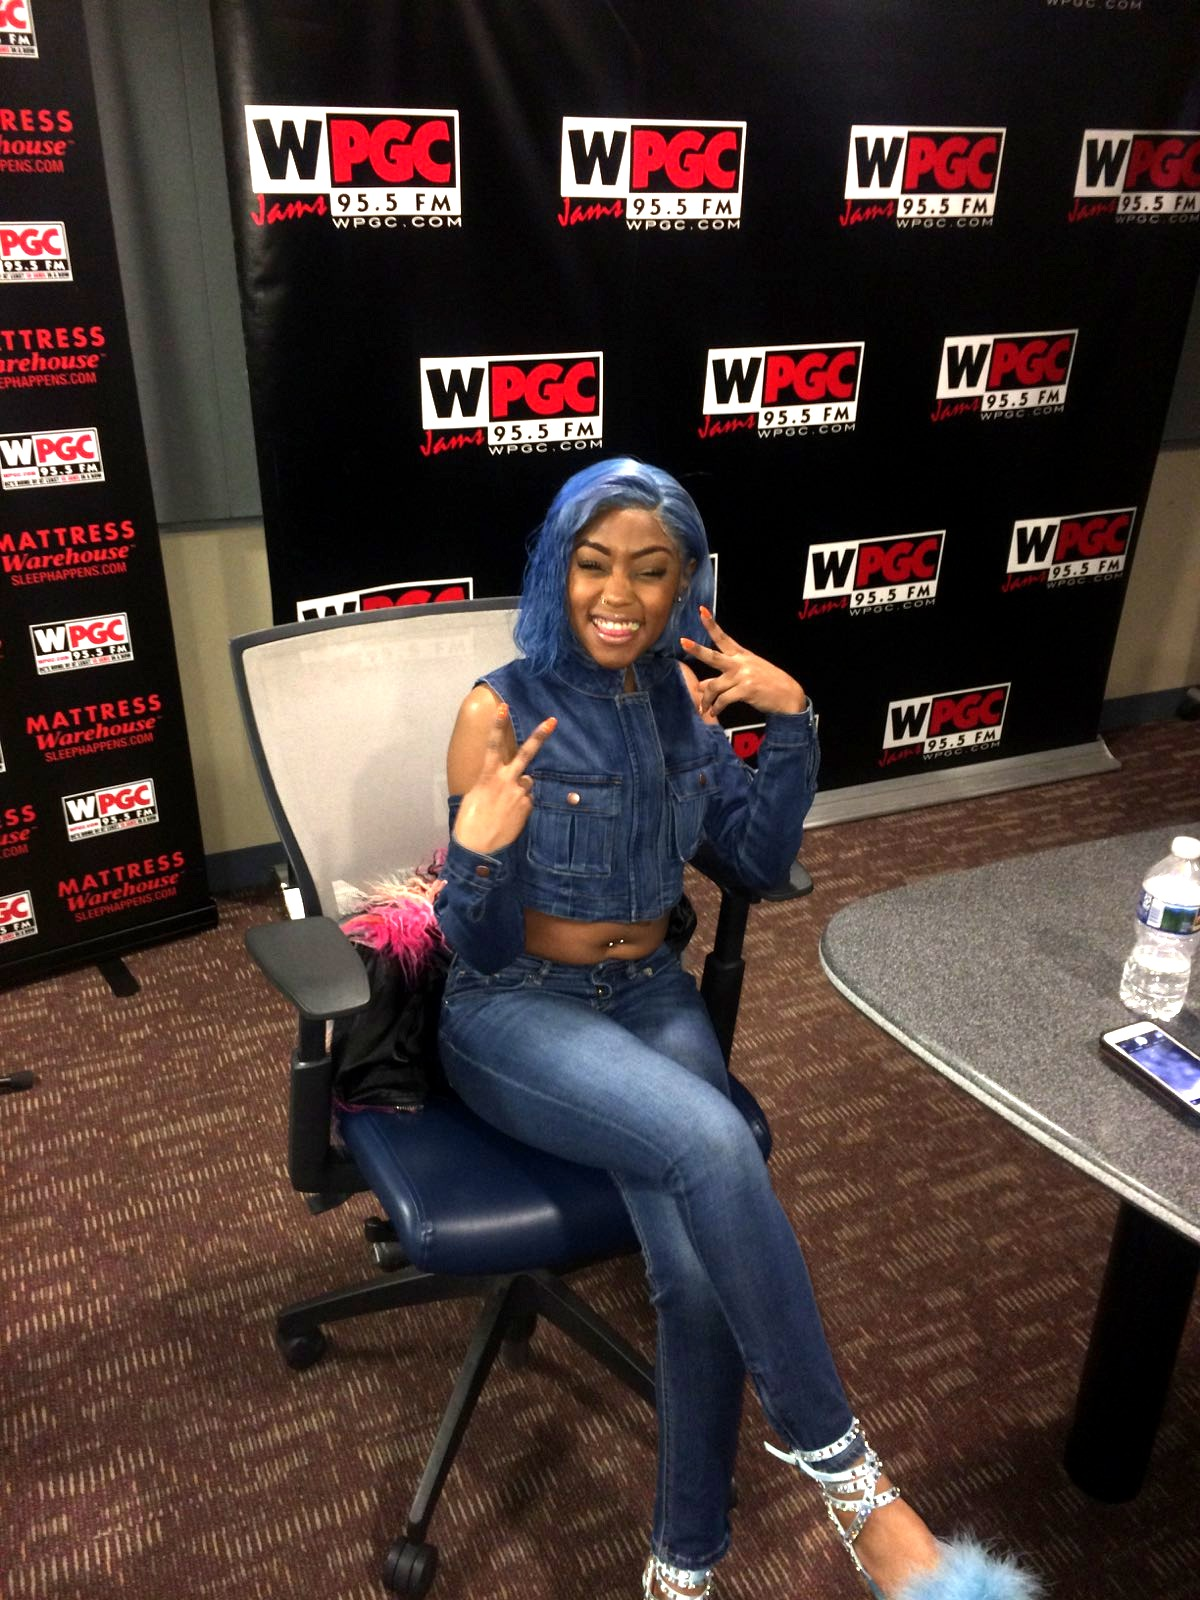 WPGC 95.5 Interview